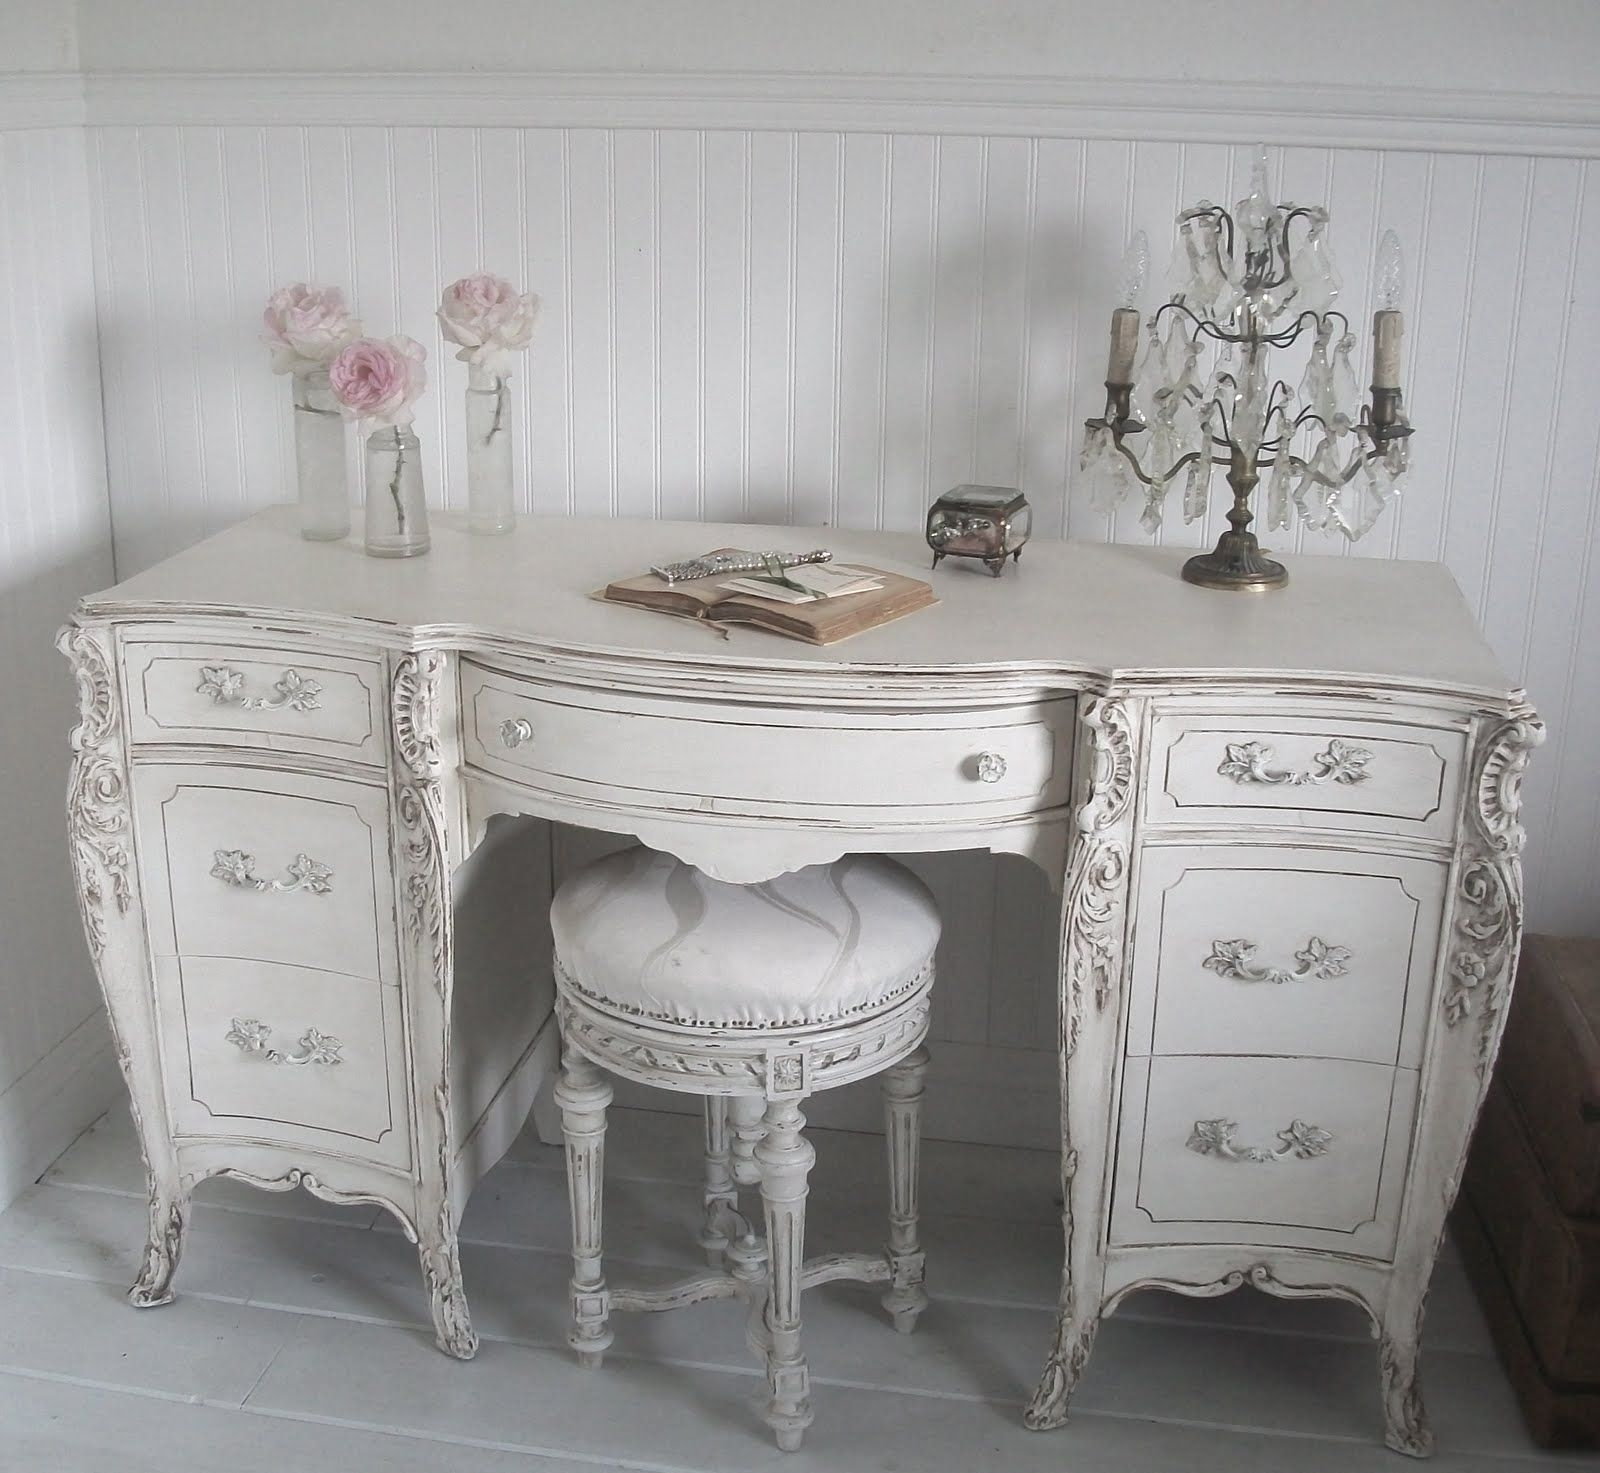 Full Bloom Cottage: French Furniture   Shabby Chic Throughout Shabby Chic Sofas (View 6 of 15)